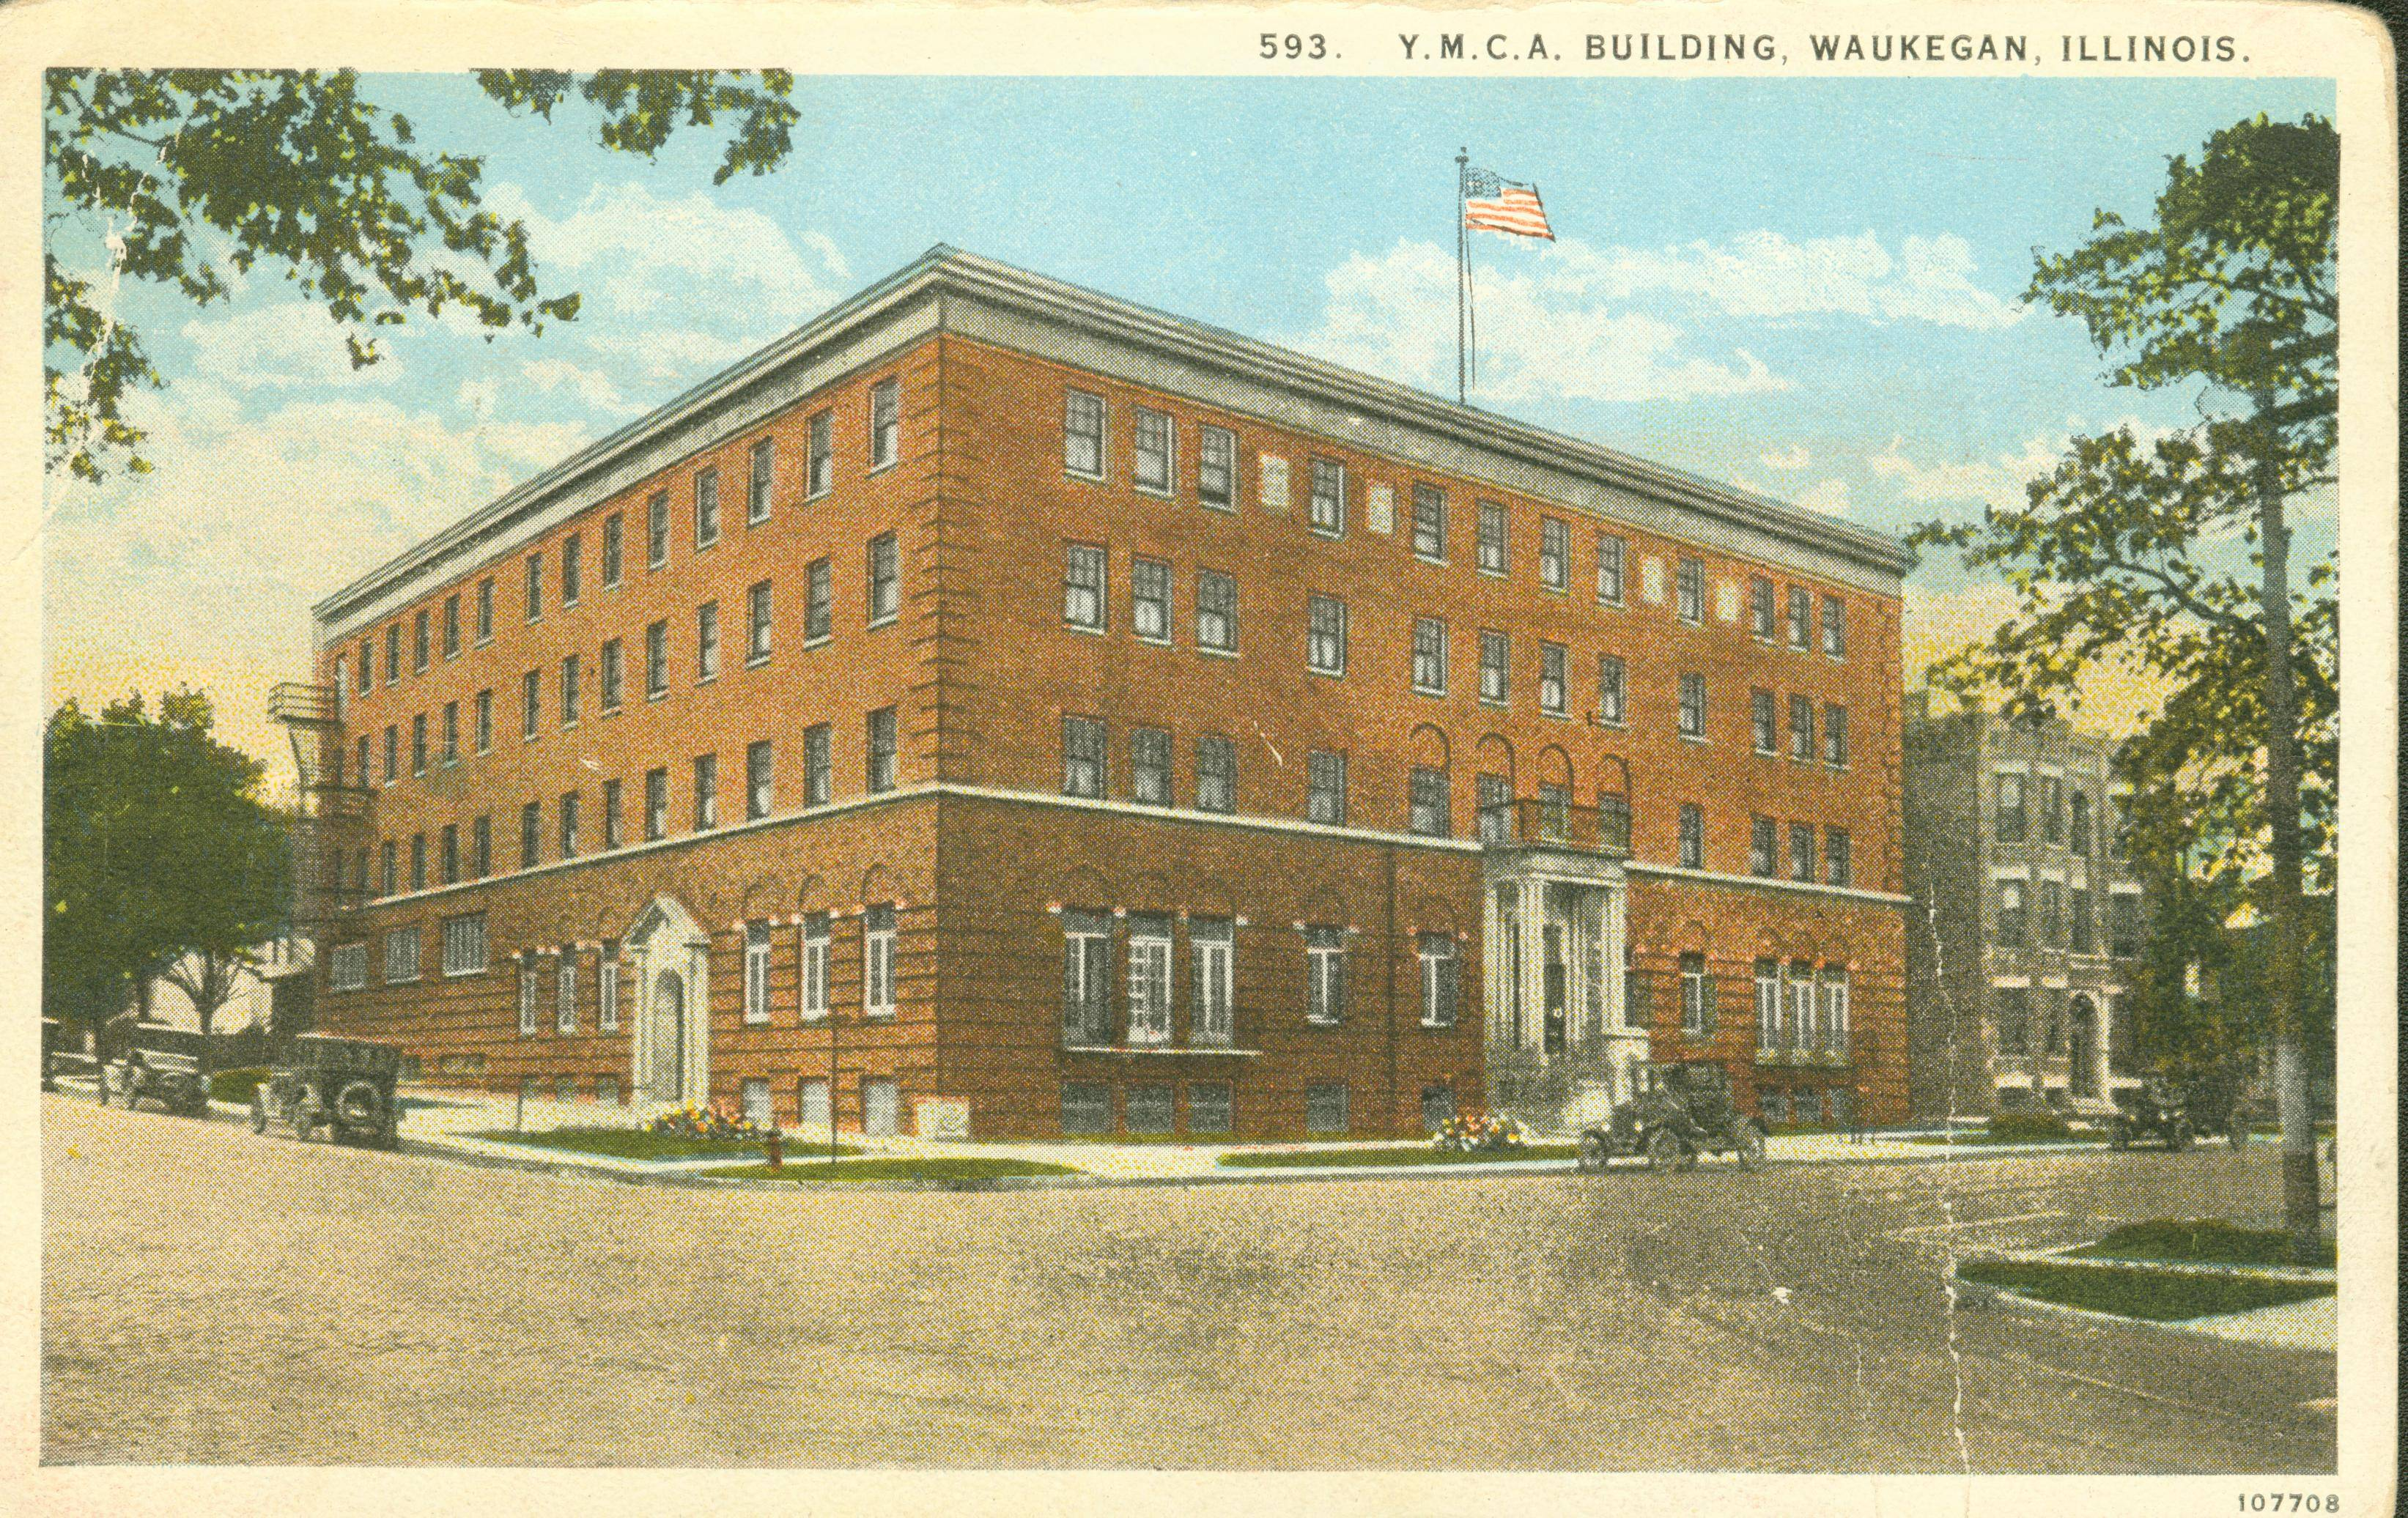 The YMCA building at County and Clayton streets in downtown Waukegan opened in 1925 and served as a residential and/or recreational center for more than 60 years. The residential dorms were closed in 1979 and the Y moved to its current Waukegan location in 1987.